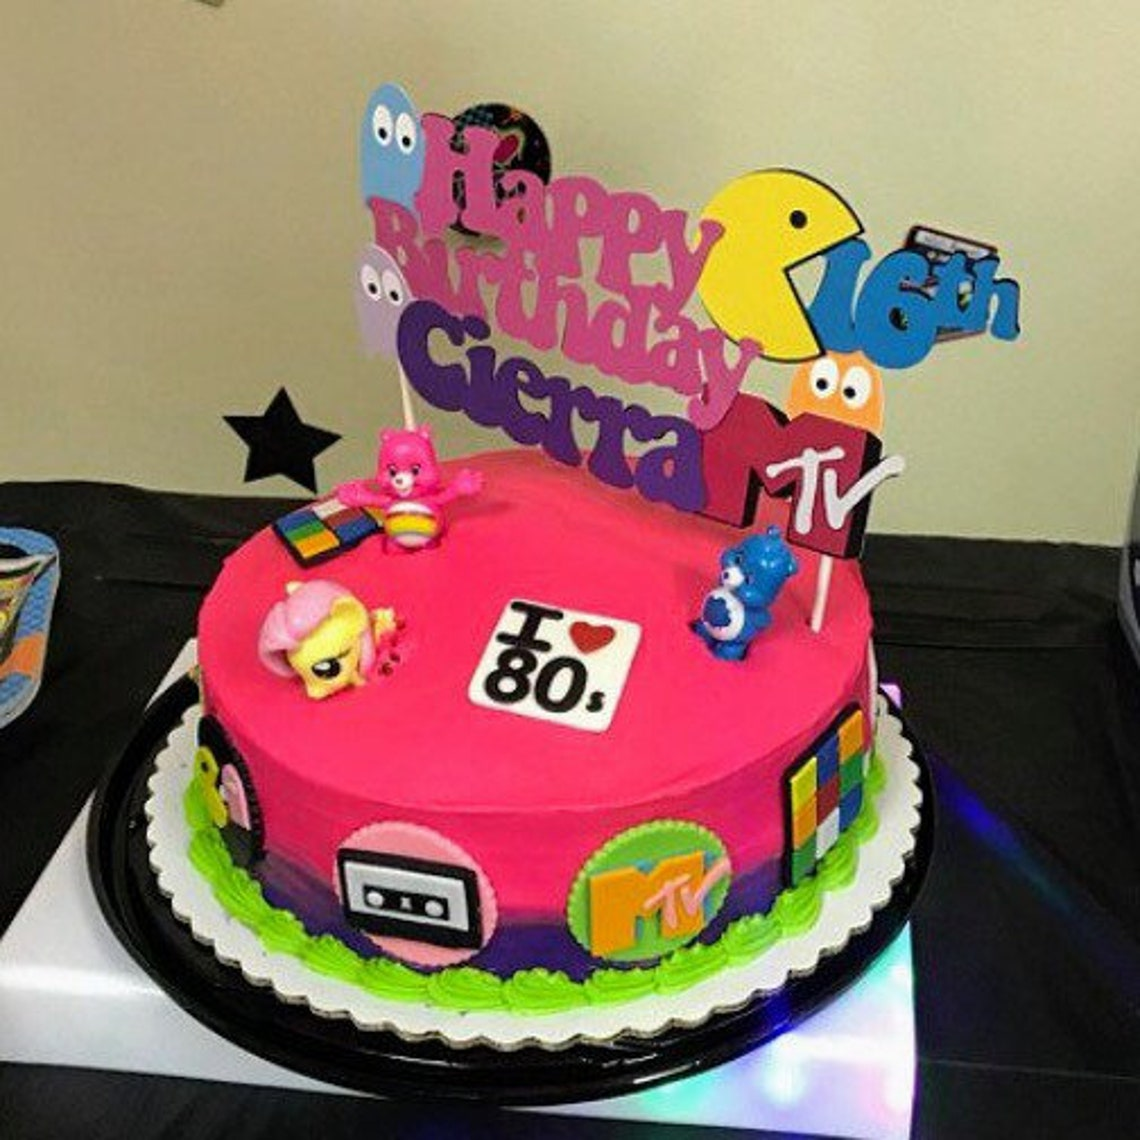 80s Theme Birthday 50th Cake Topper CenterpieceAny Age Pacman Decoration Custom